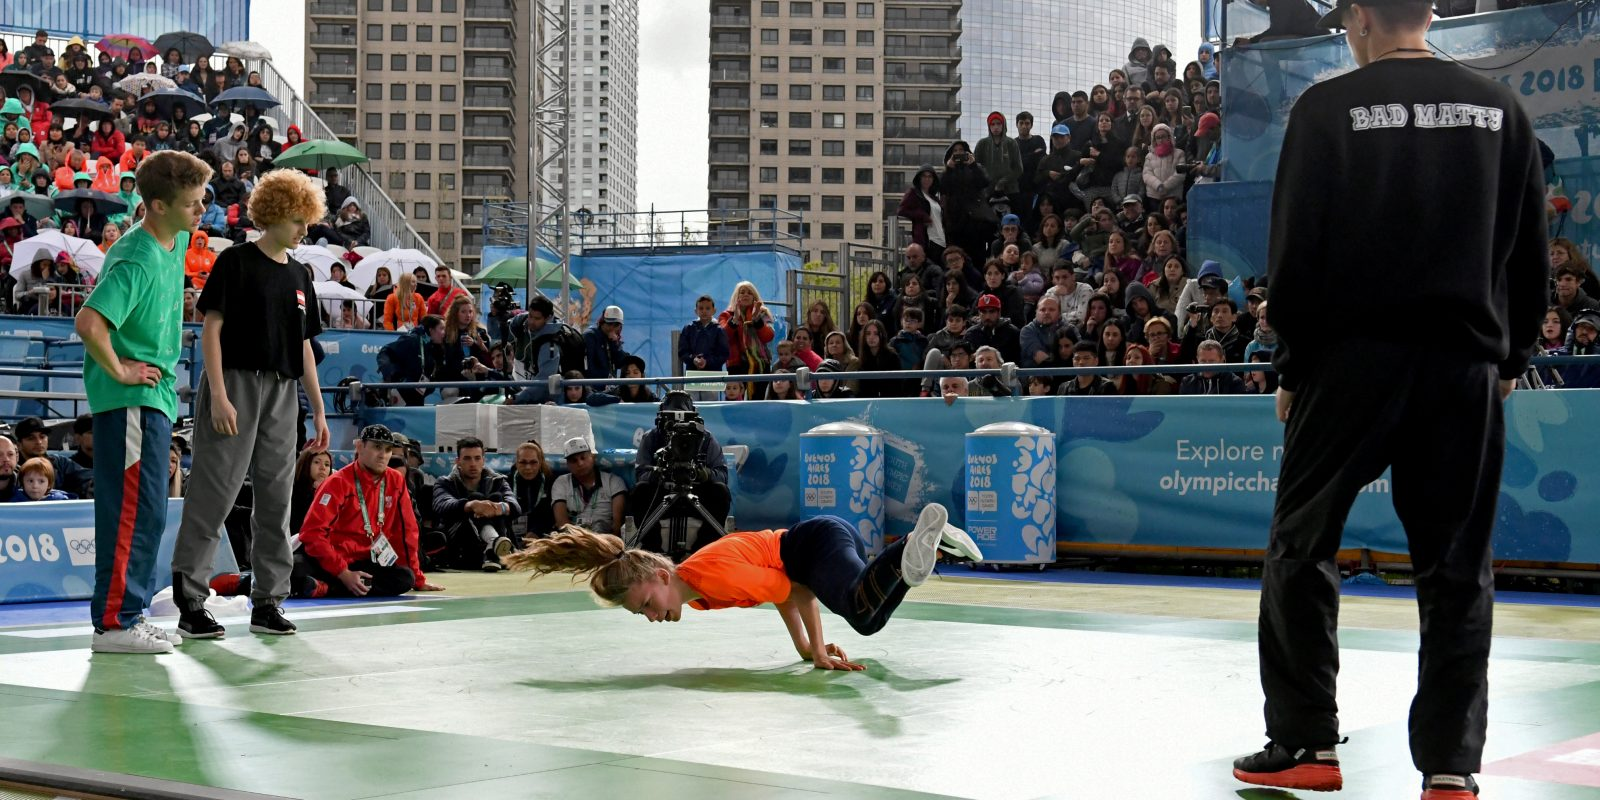 11 October 2018, Argentina, Buenos Aires: Breakdance semi-final at the Youth Olympic Games. Breakdance, the artistic dance style from the hip-hop scene, has arrived to the Olympics. Photo: Fabian Ramella/dpa (Photo by Fabian Ramella/picture alliance via Getty Images)